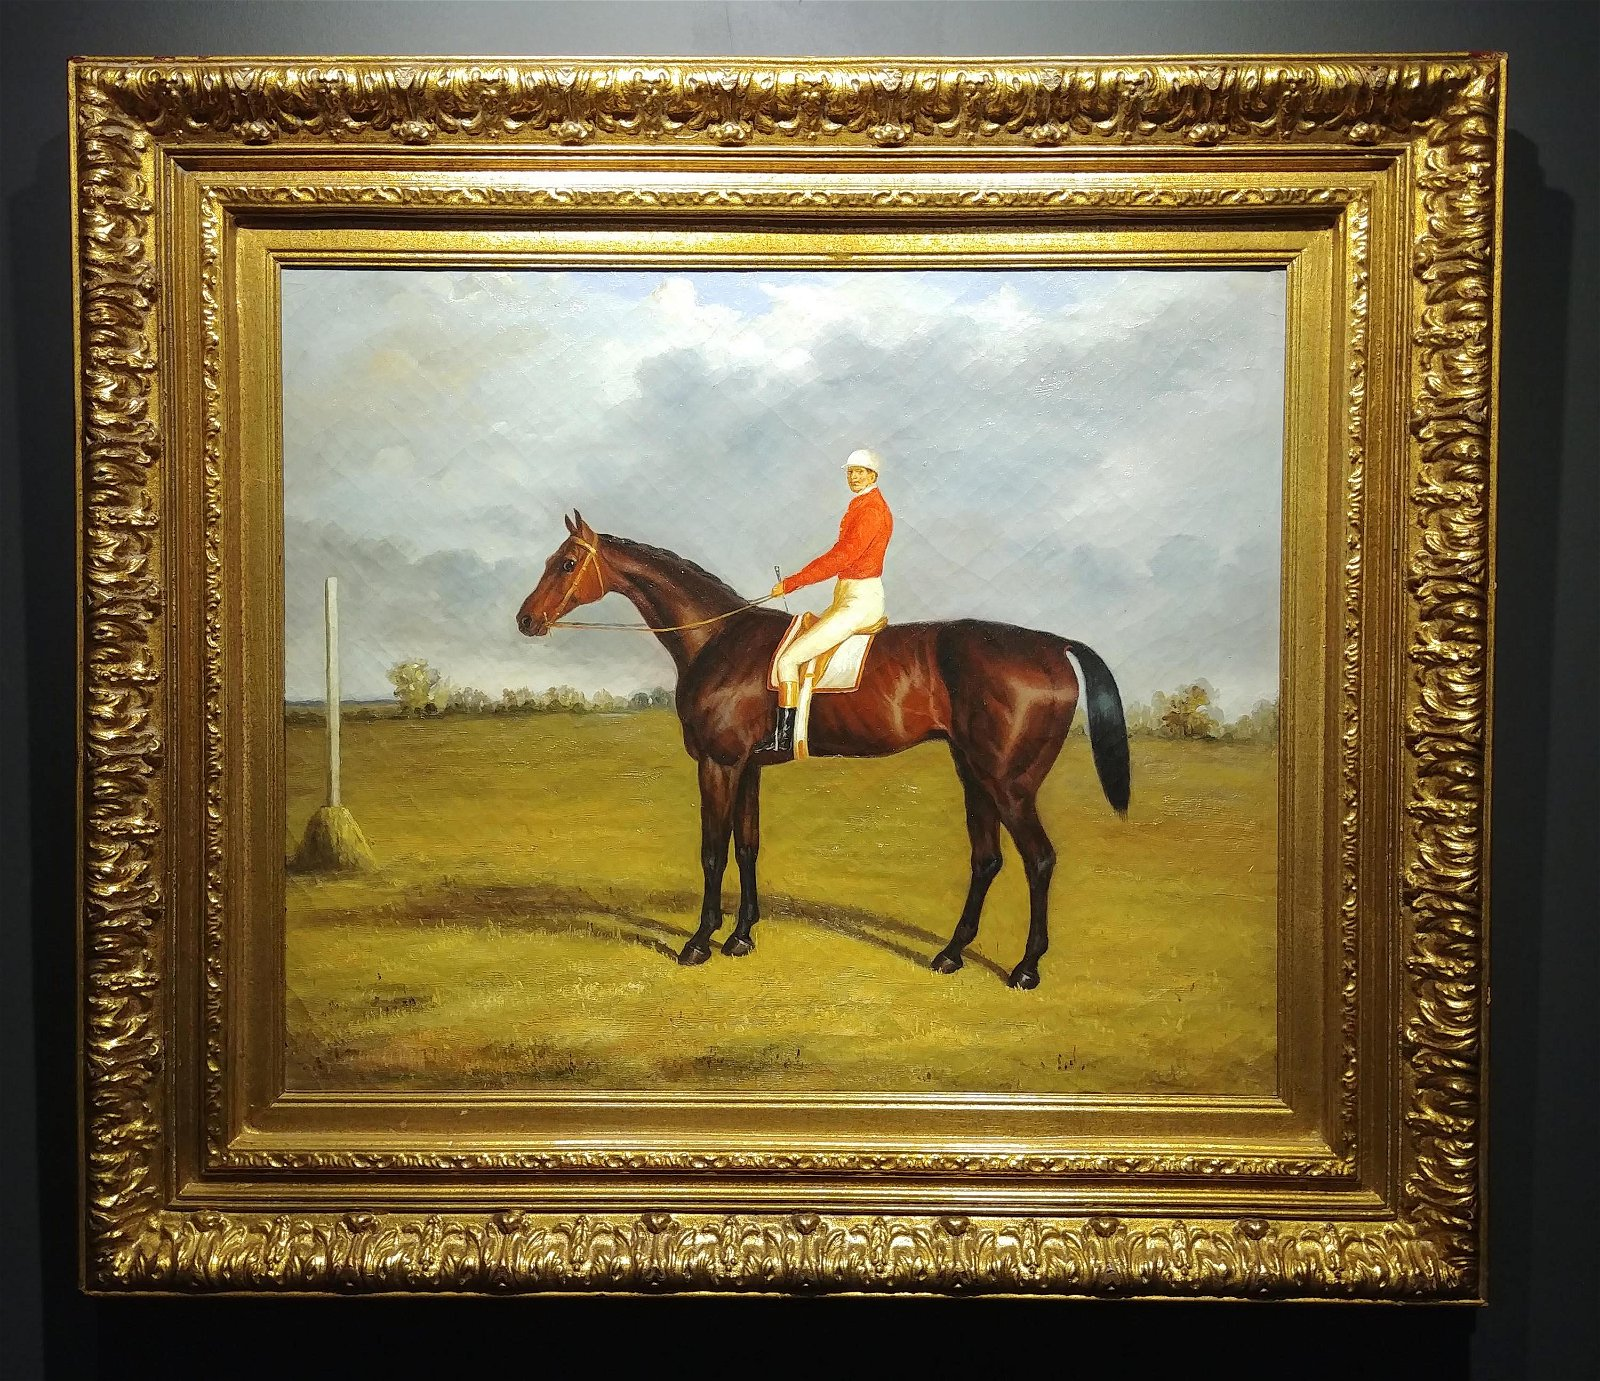 Oil on Canvas, Paddock Scene with Horse & Jockey,